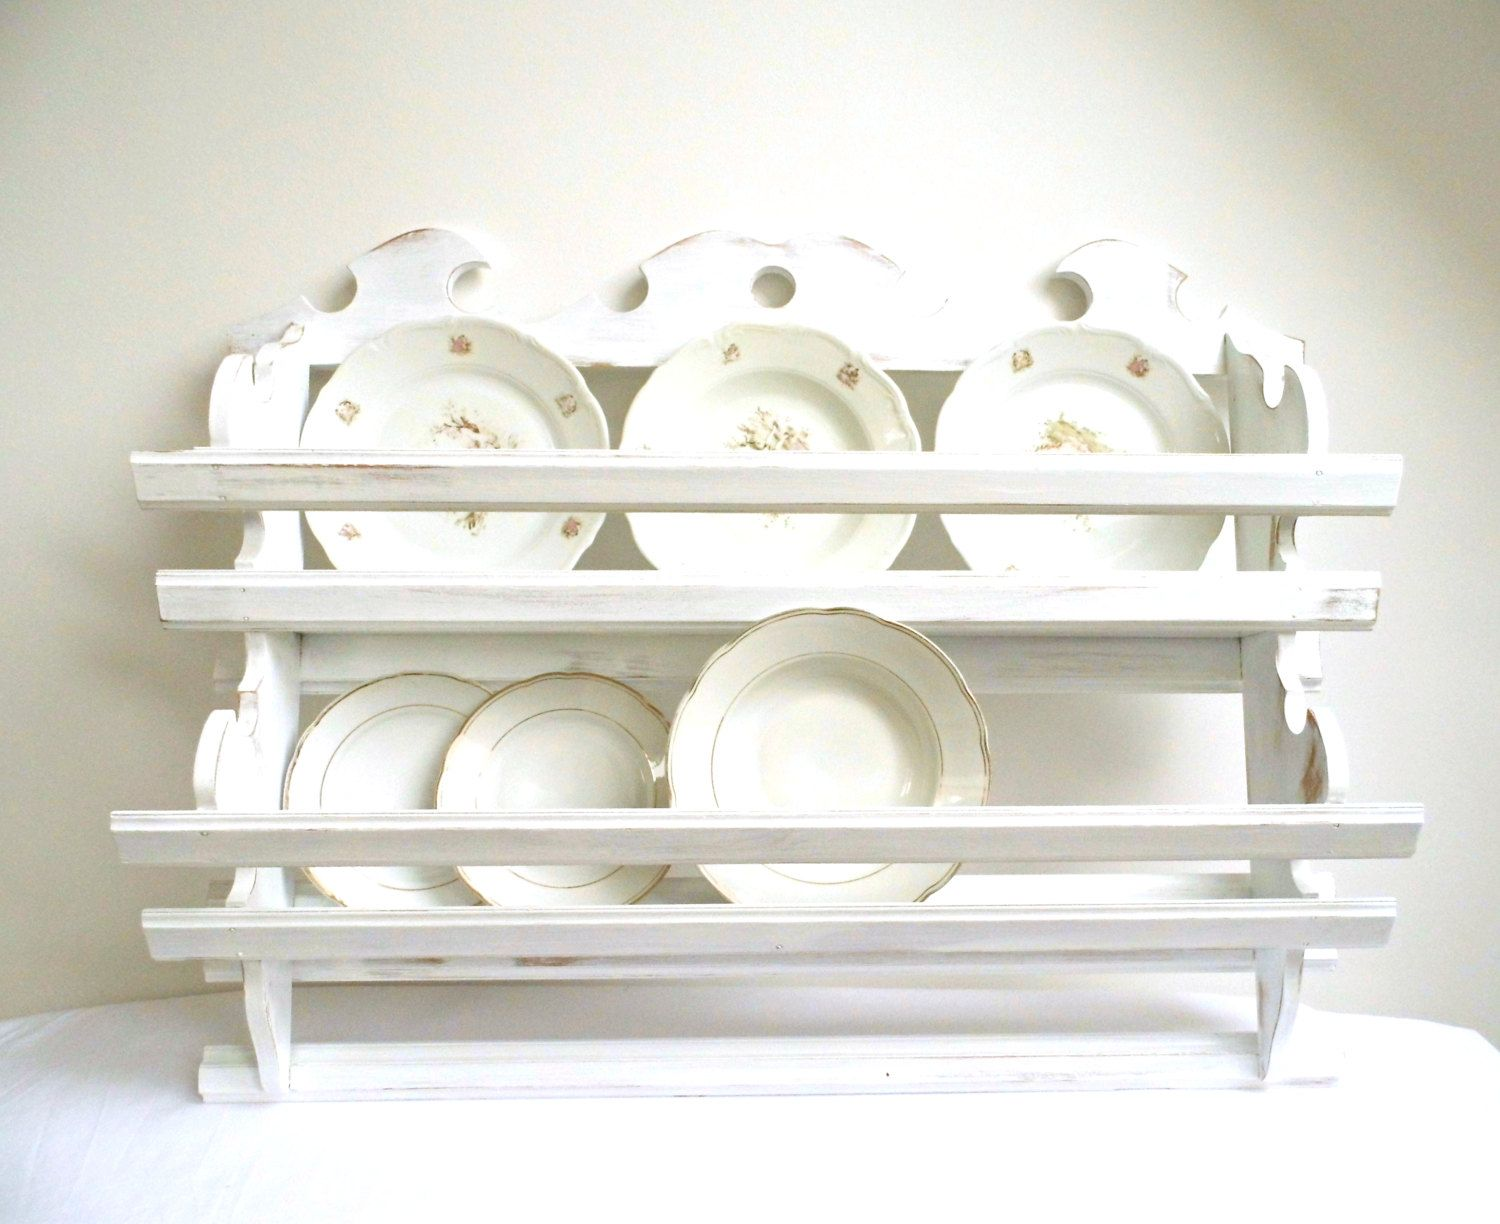 Wooden Plate Racks For Kitchens Vintage Plate Rack Wall Holder Tea Cup Shelf Storage Kitchen